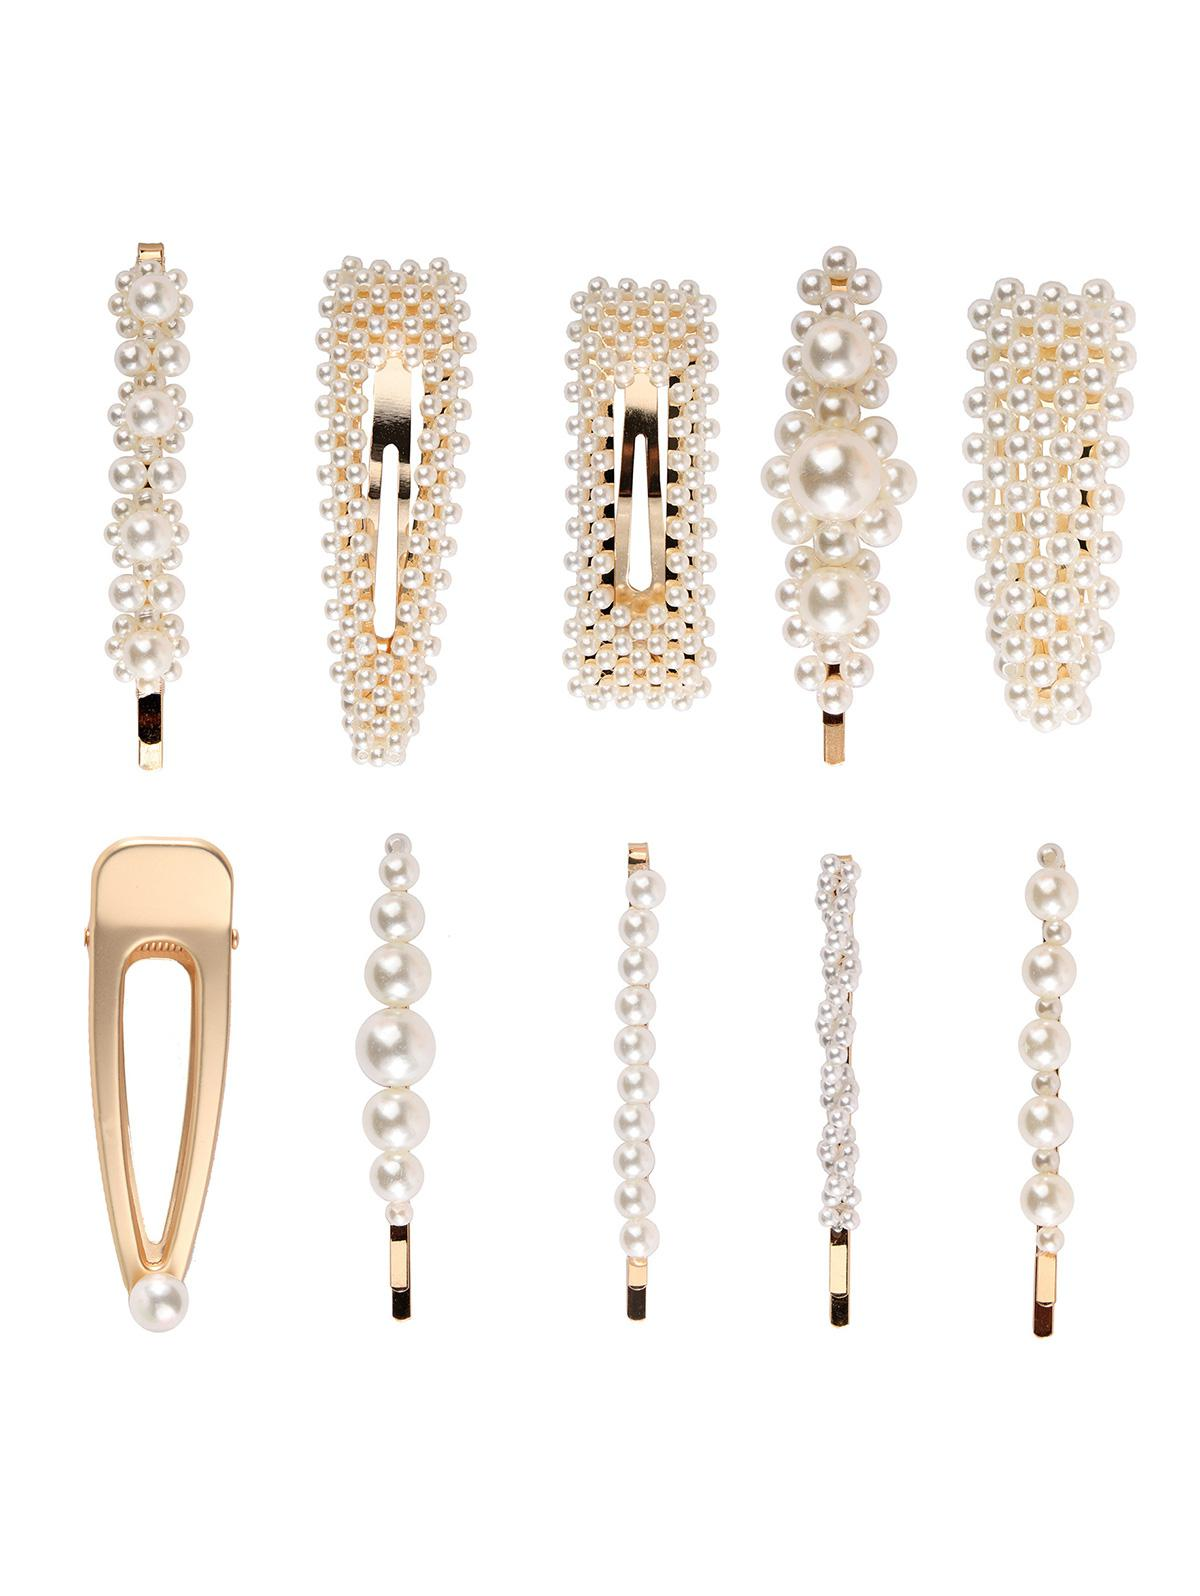 10Pcs Artificial Pearl Hair Pin Set thumbnail